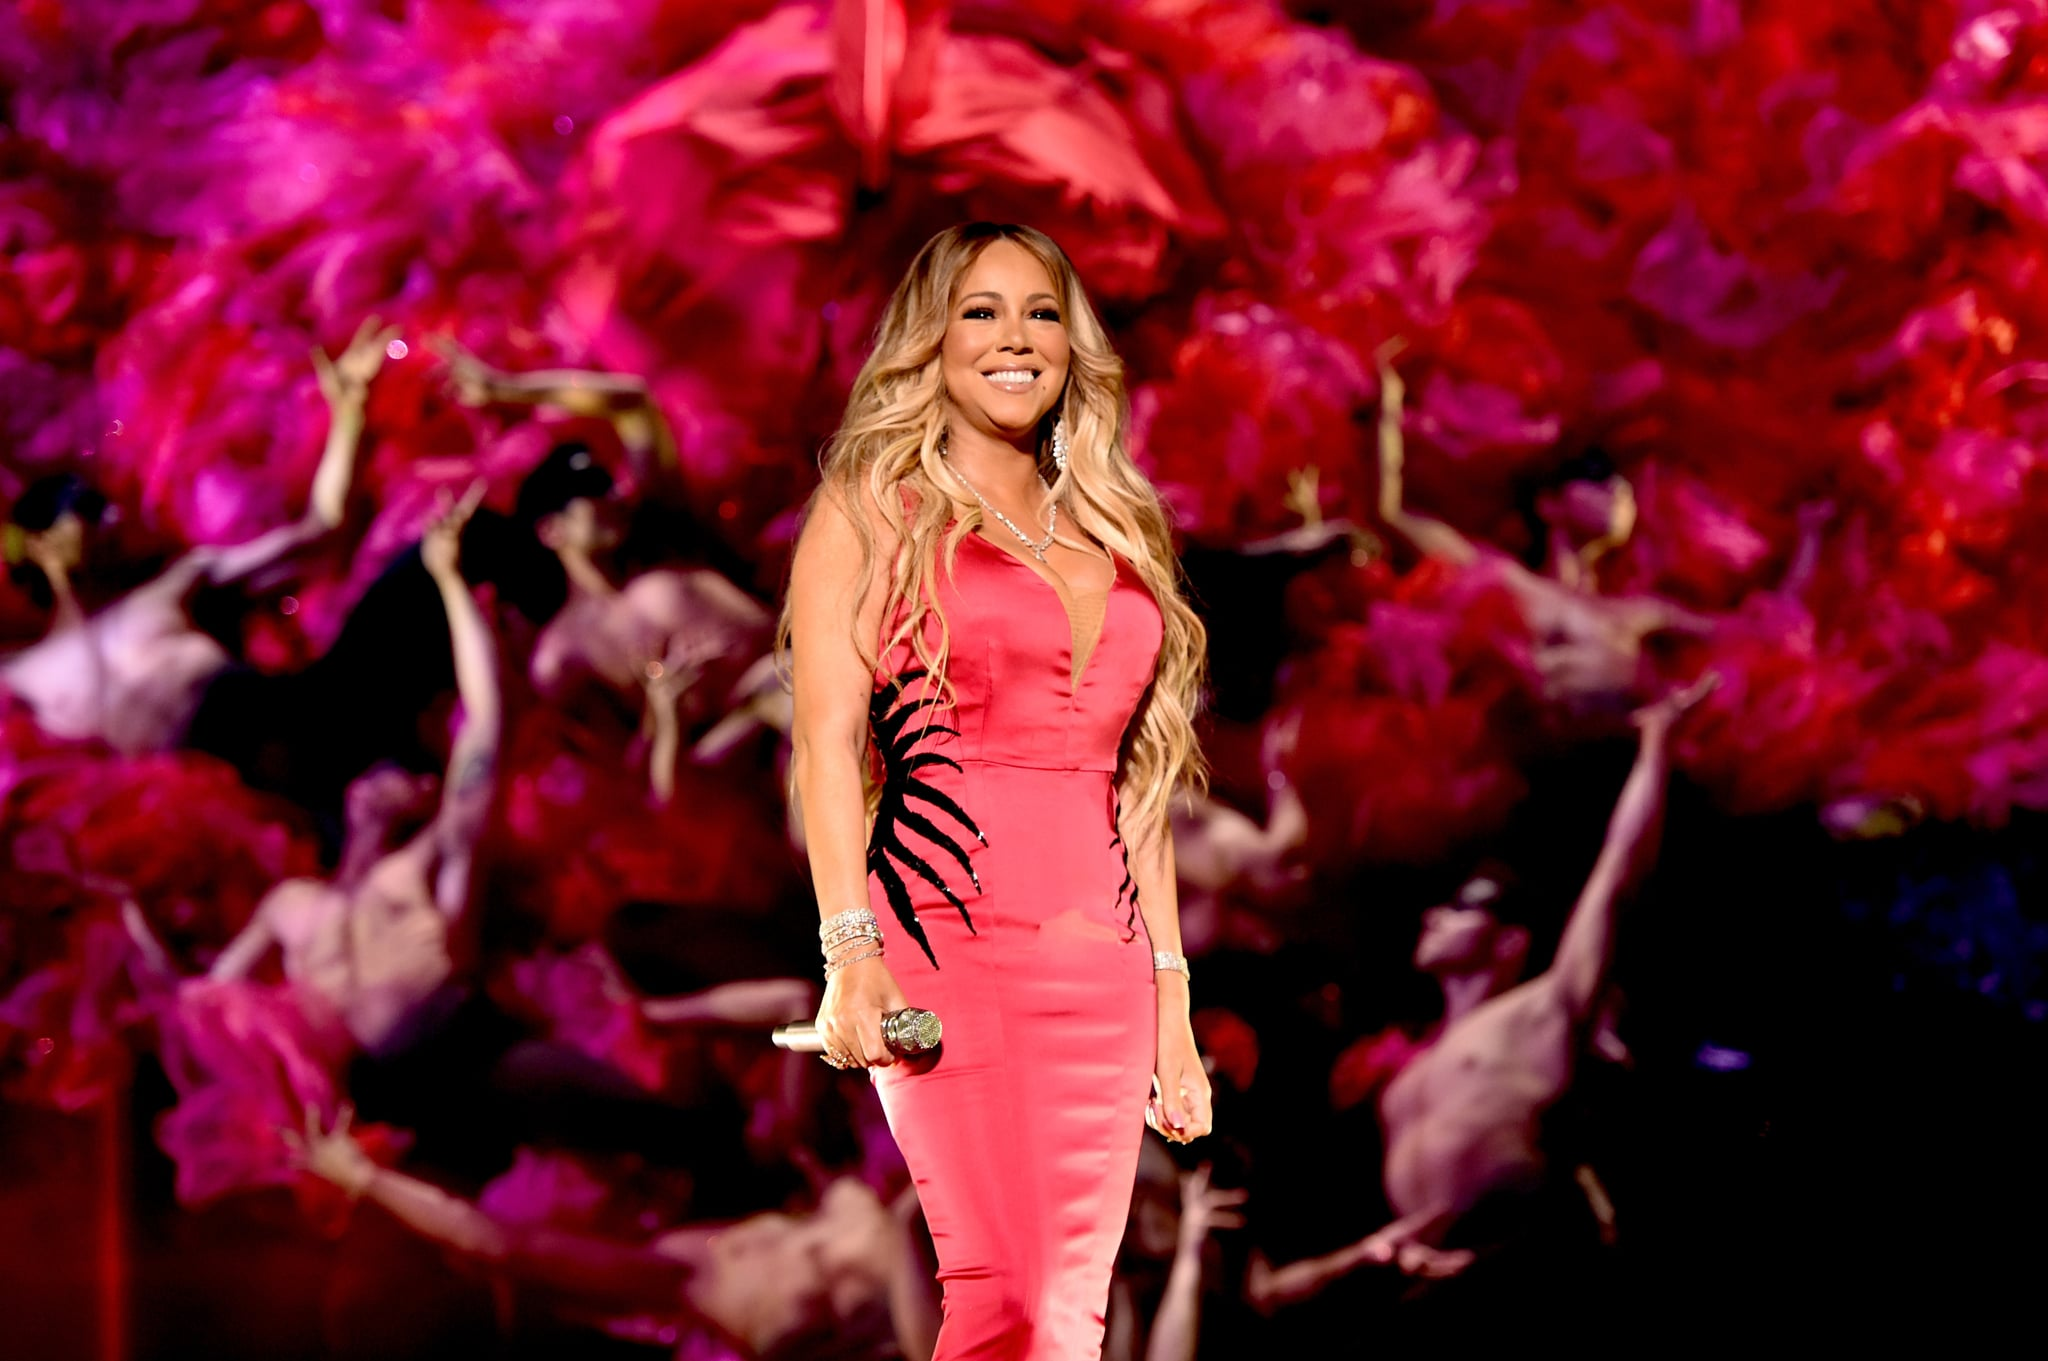 LOS ANGELES, CA - OCTOBER 09:  Mariah Carey performs onstage during the 2018 American Music Awards at Microsoft Theatre on October 9, 2018 in Los Angeles, California.  (Photo by John Shearer/AMA2018/Getty Images For dcp)